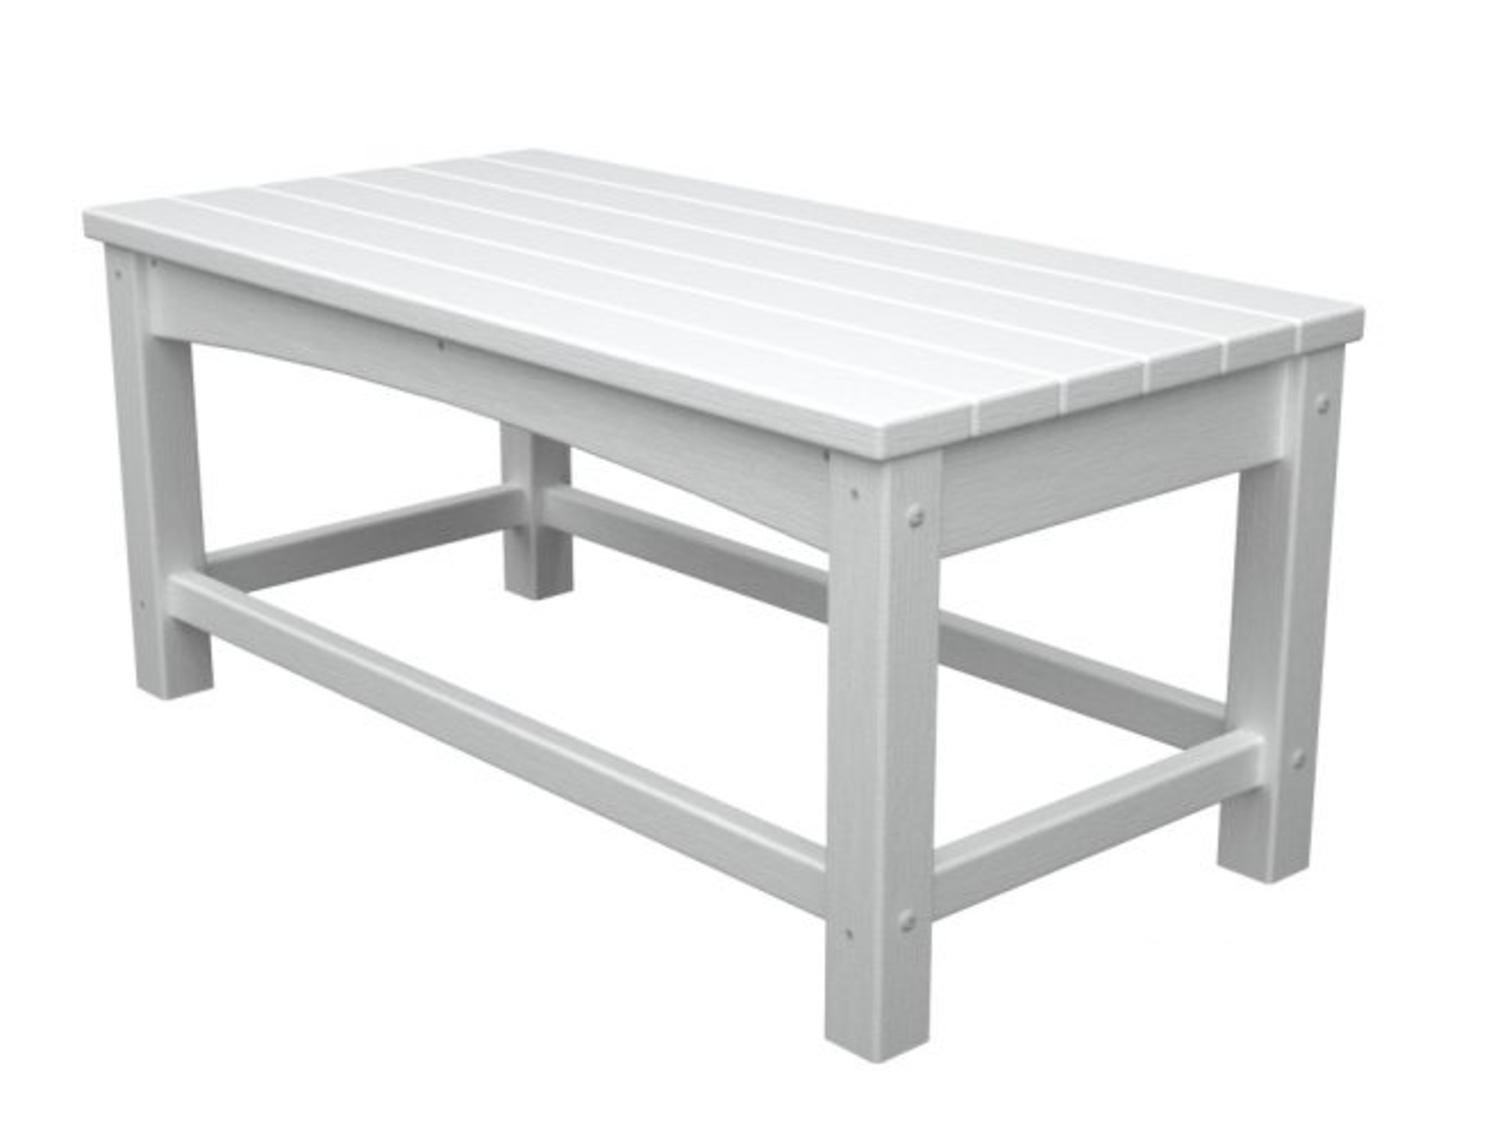 """35.5"""" Recycled Earth-Friendly Outdoor Patio Club Coffee Table - White"""